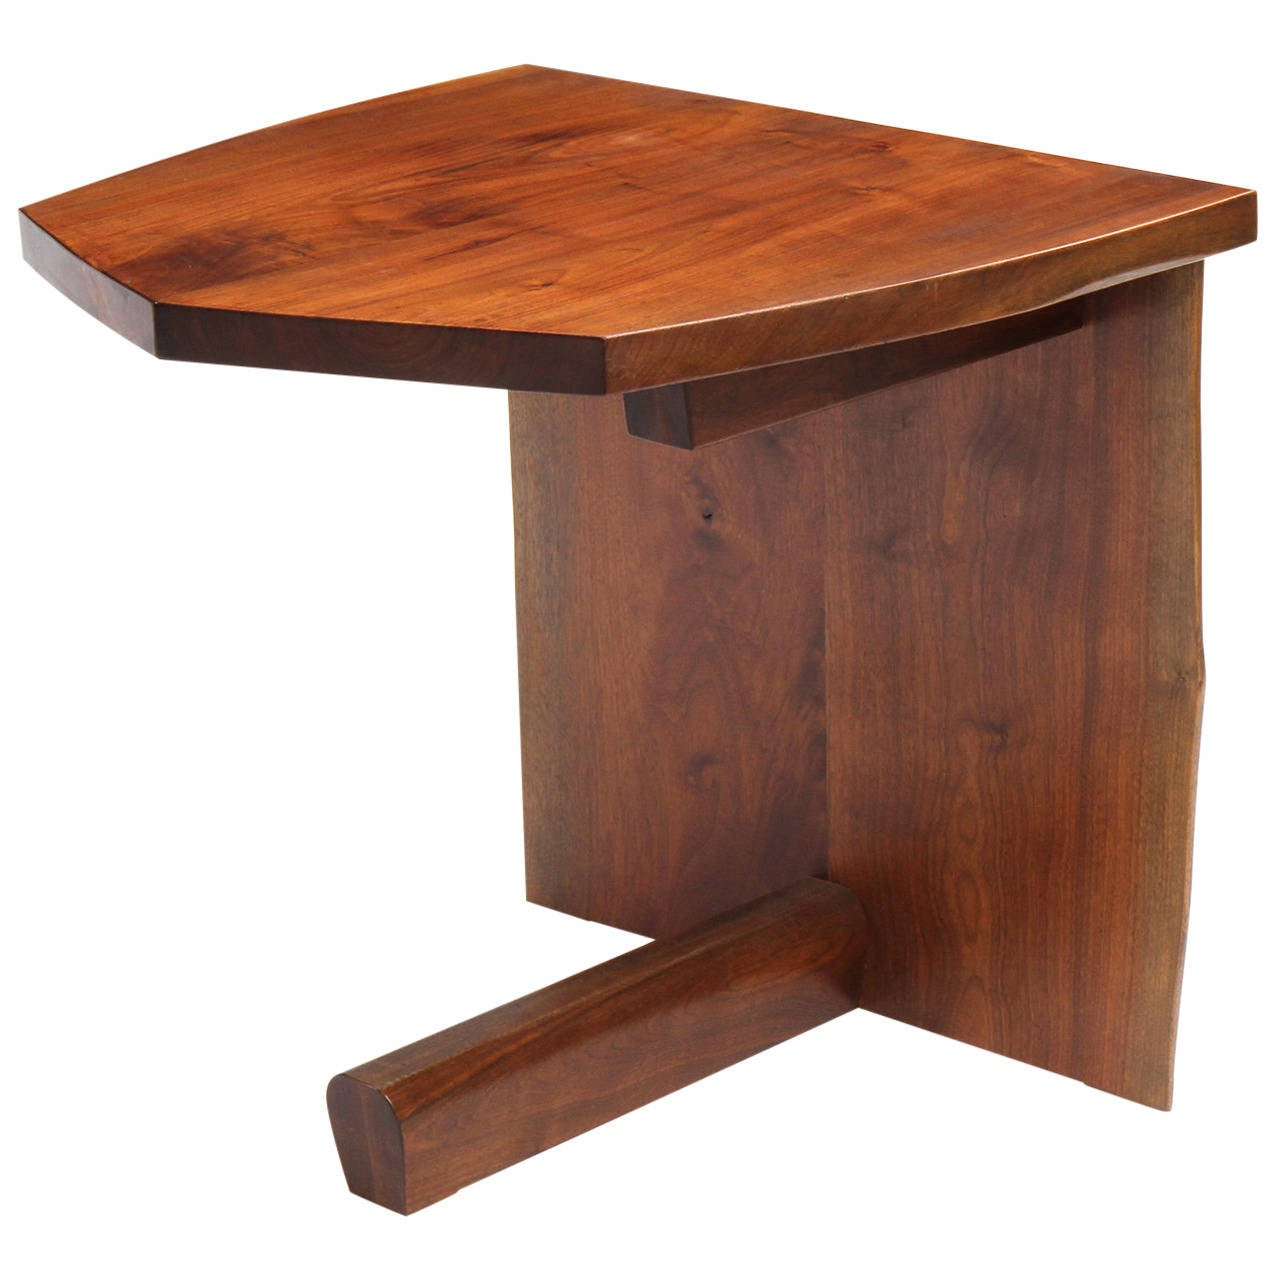 Unique end table by george nakashima at 1stdibs for Interesting tables